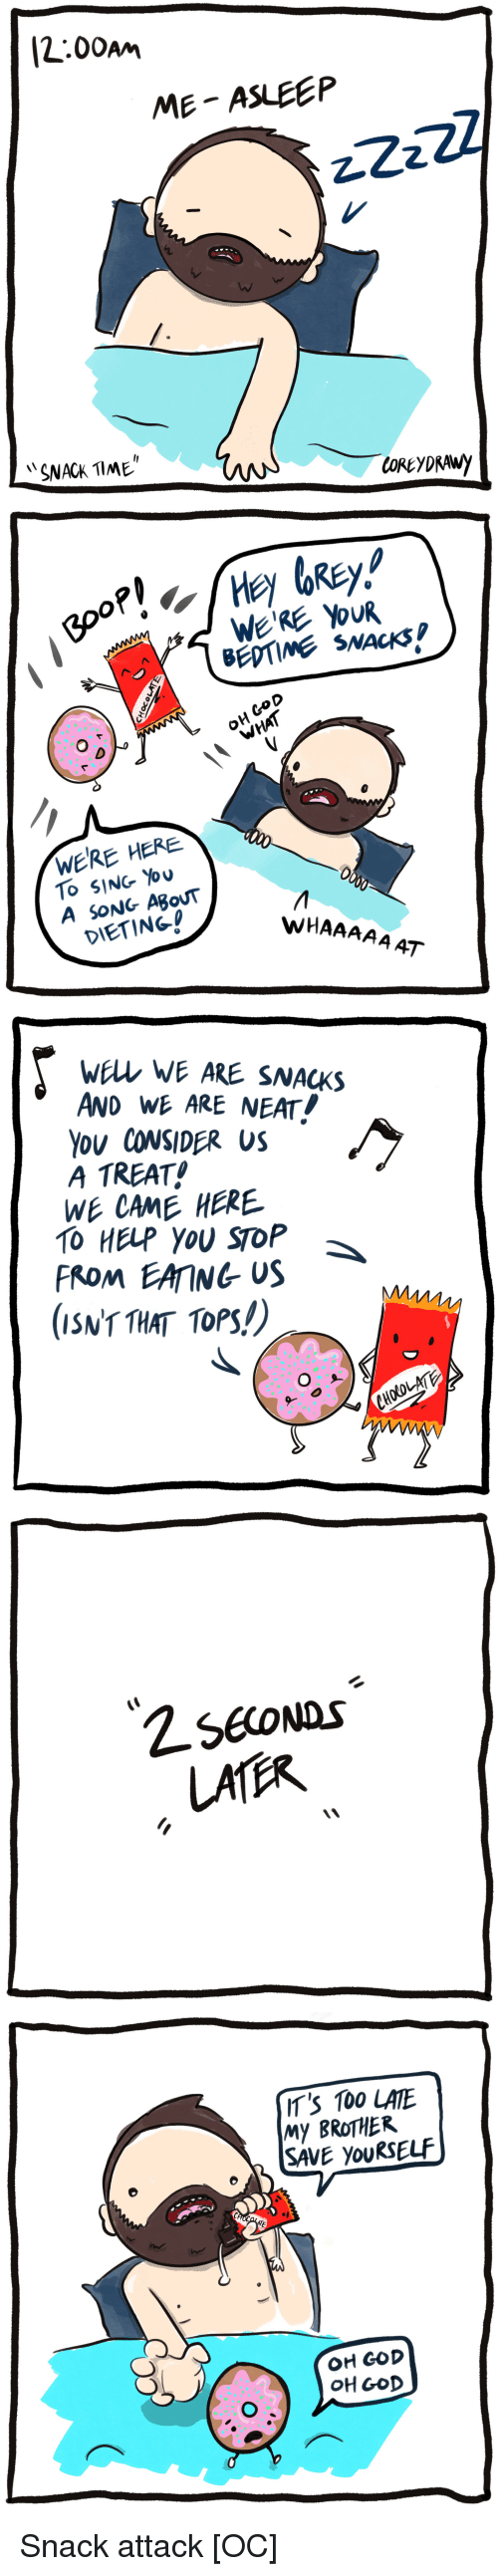 Anaconda, Dieting, and God: [2:00am  ME ASLEEP  SNACK TlME   BEDTIME SNACKS  O D  OH CoD  WERE HERE  To SING You  A SONG ABouT  DIETING!  WHAAAAA AT   wELL WE ARE SNACKS  AND WE ARE NEAT!  Ou CONSIDER US  A TREAT  WE CAME HERE  TO HELP YOU SToP  FROM EAING US  (ISNT THAT TOPS!)   IT'S 100 LATE  My BROTHER  SAVE youRSELF  OH GOD  OH GOD Snack attack [OC]